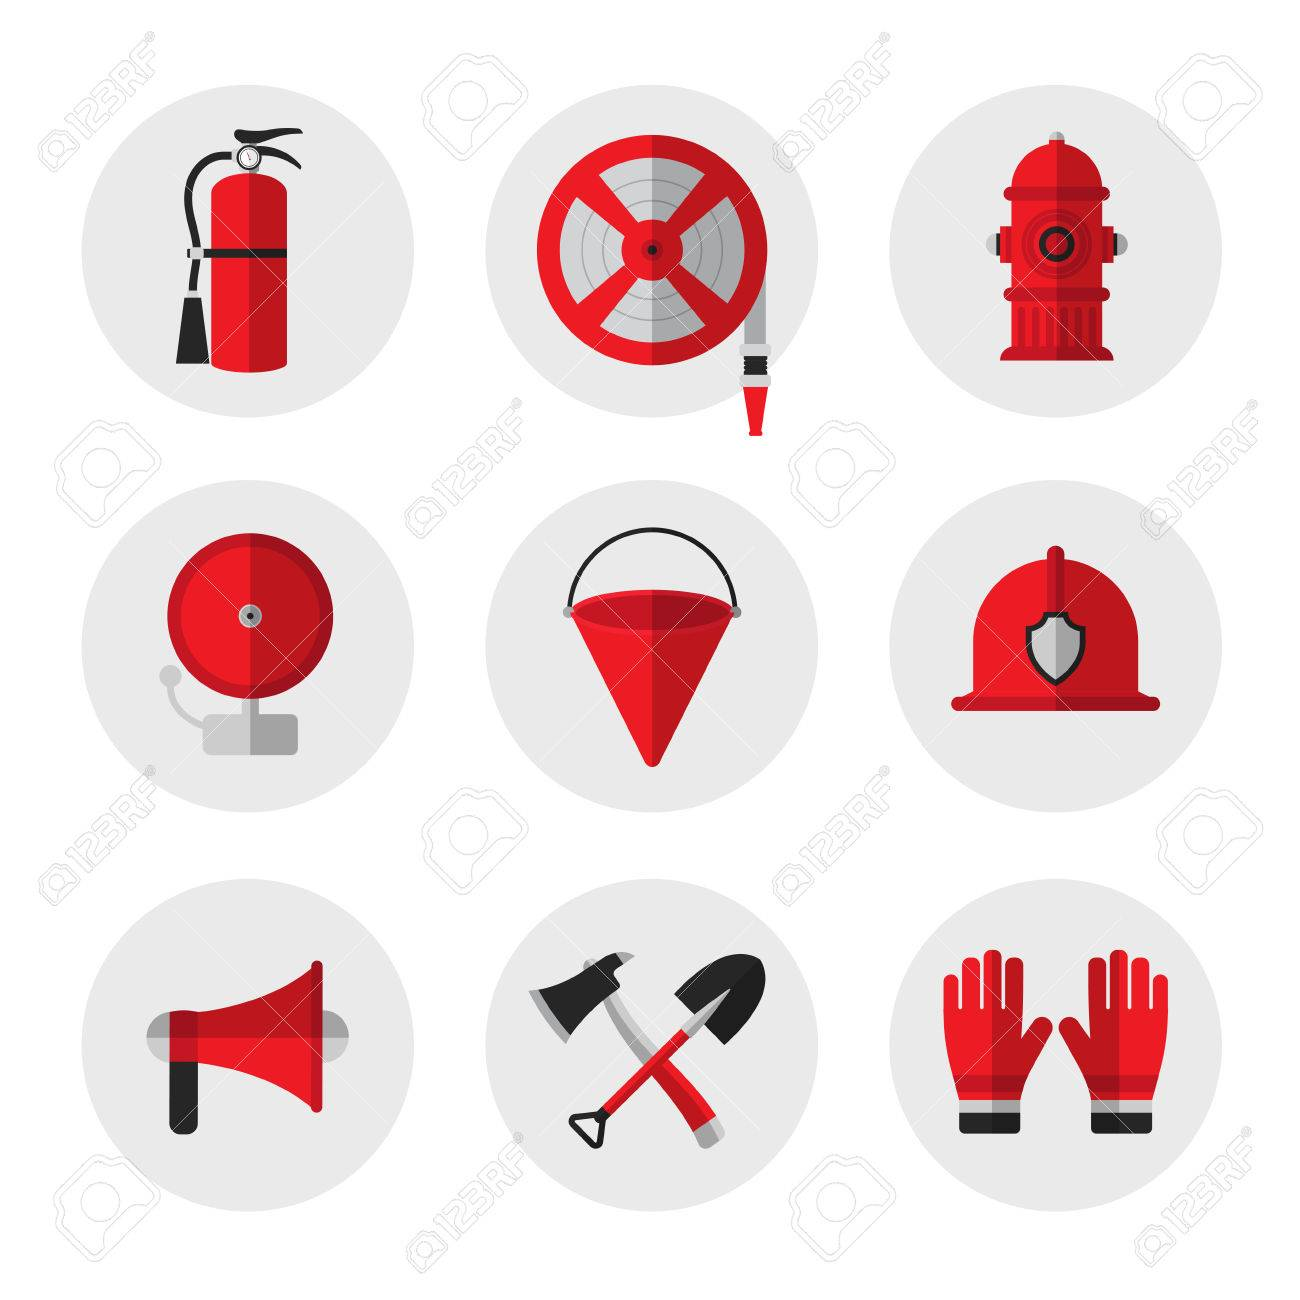 Fire extinguisher symbol choice image symbol and sign ideas fire safety symbols gallery symbol and sign ideas fire extinguisher symbols clipart floor wiring firefighting and buycottarizona Choice Image